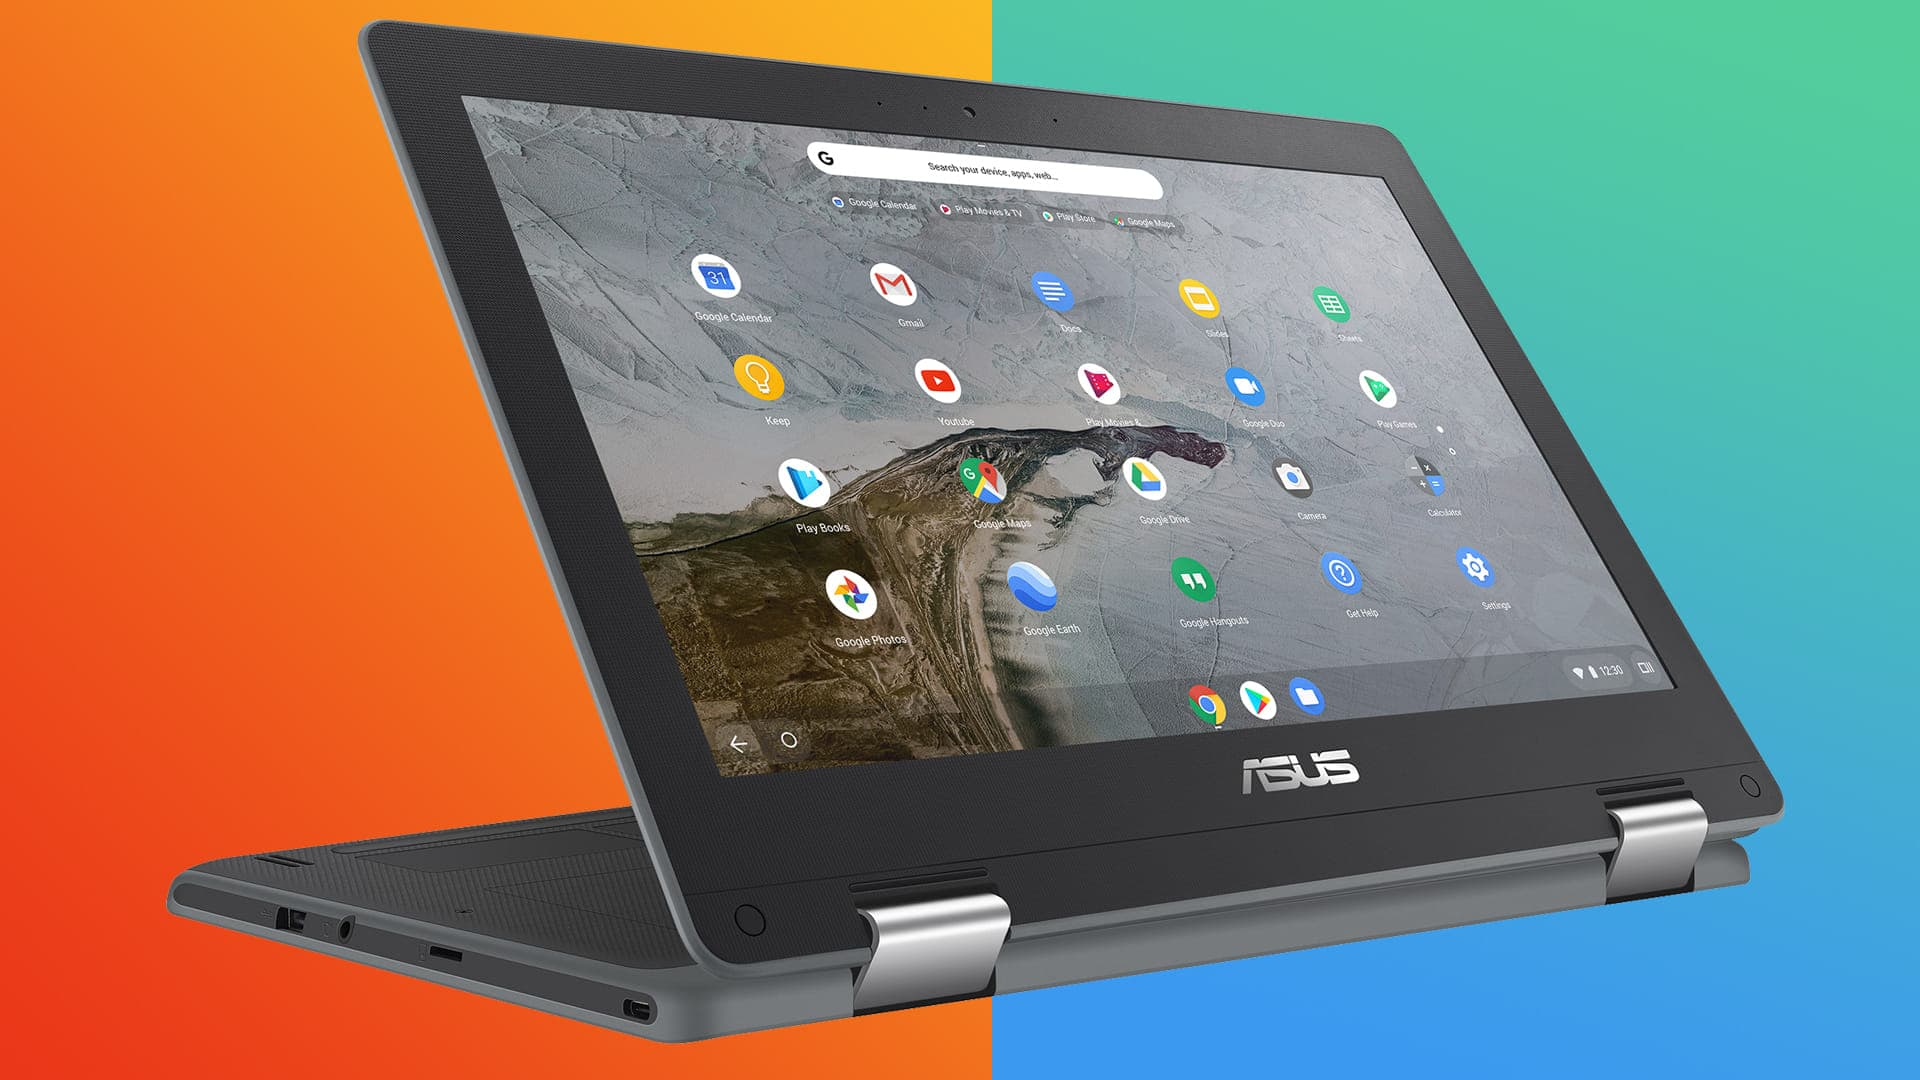 ASUS Launches New Super Affordable Chromebooks In India - 5